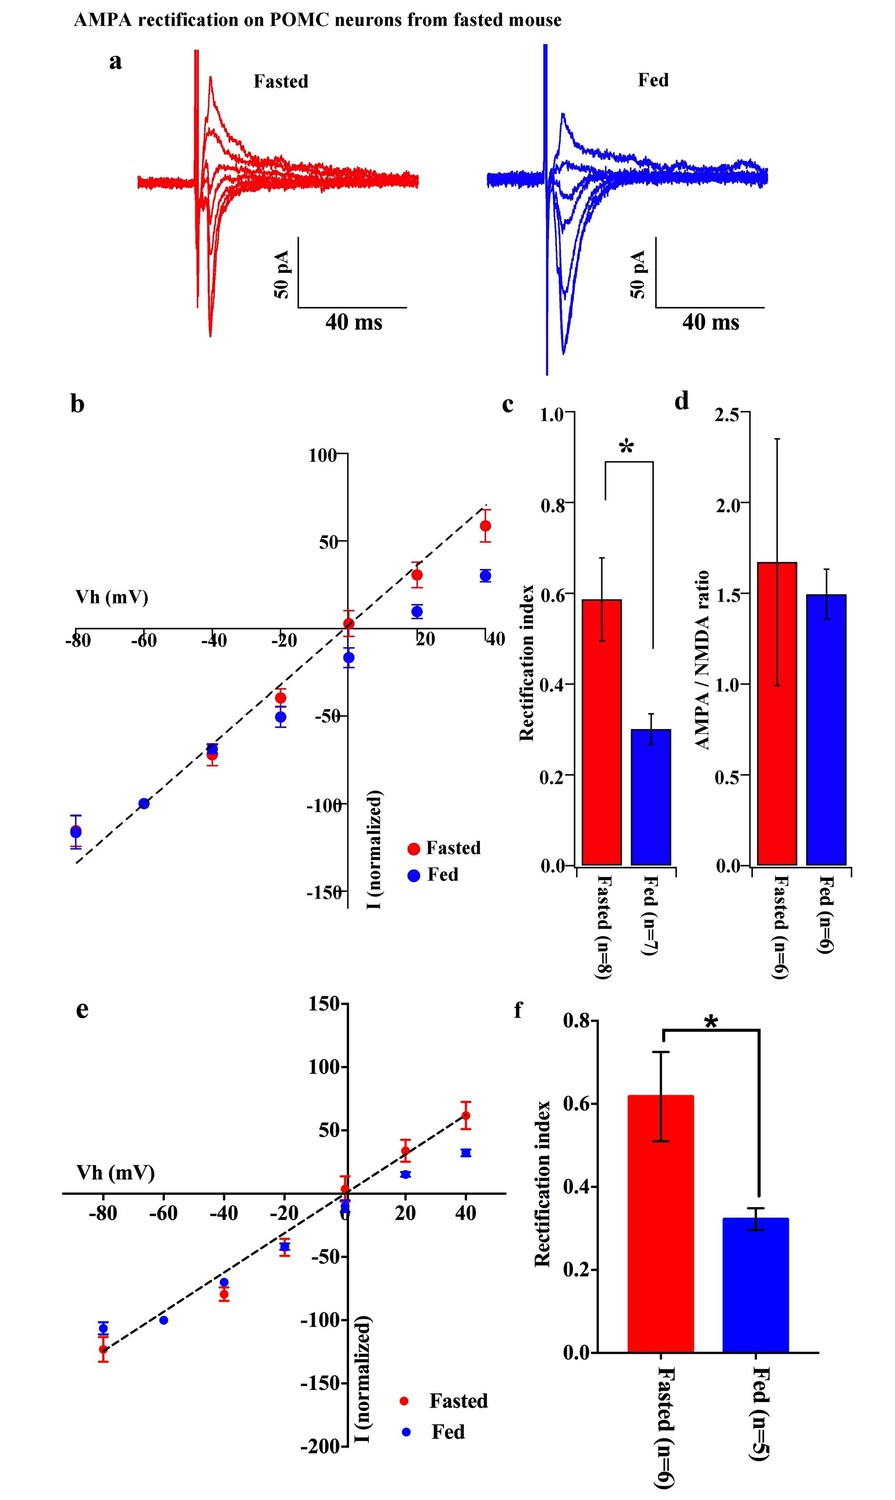 Plasticity Of Calcium Permeable Ampa Glutamate Receptors In Pro More Complete Details Both These Formats Rectifier Circuit Rectification On Pomc Neurons Disappeared But Nmda Ratio Unchanged By Fasting